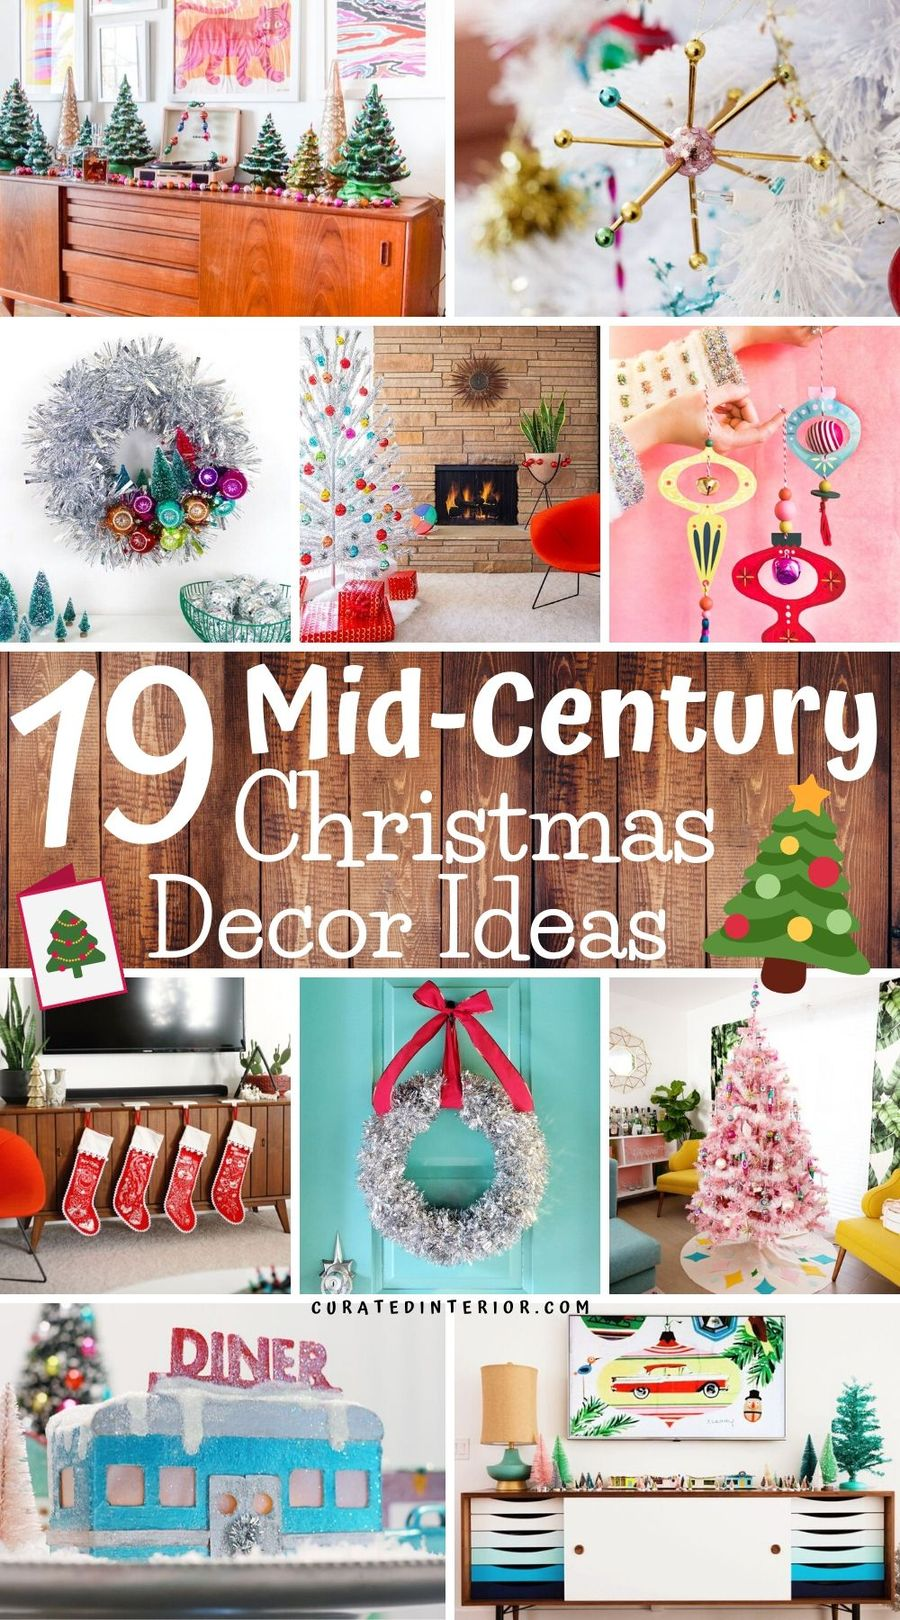 19 Mid-Century Modern Christmas Decor Ideas